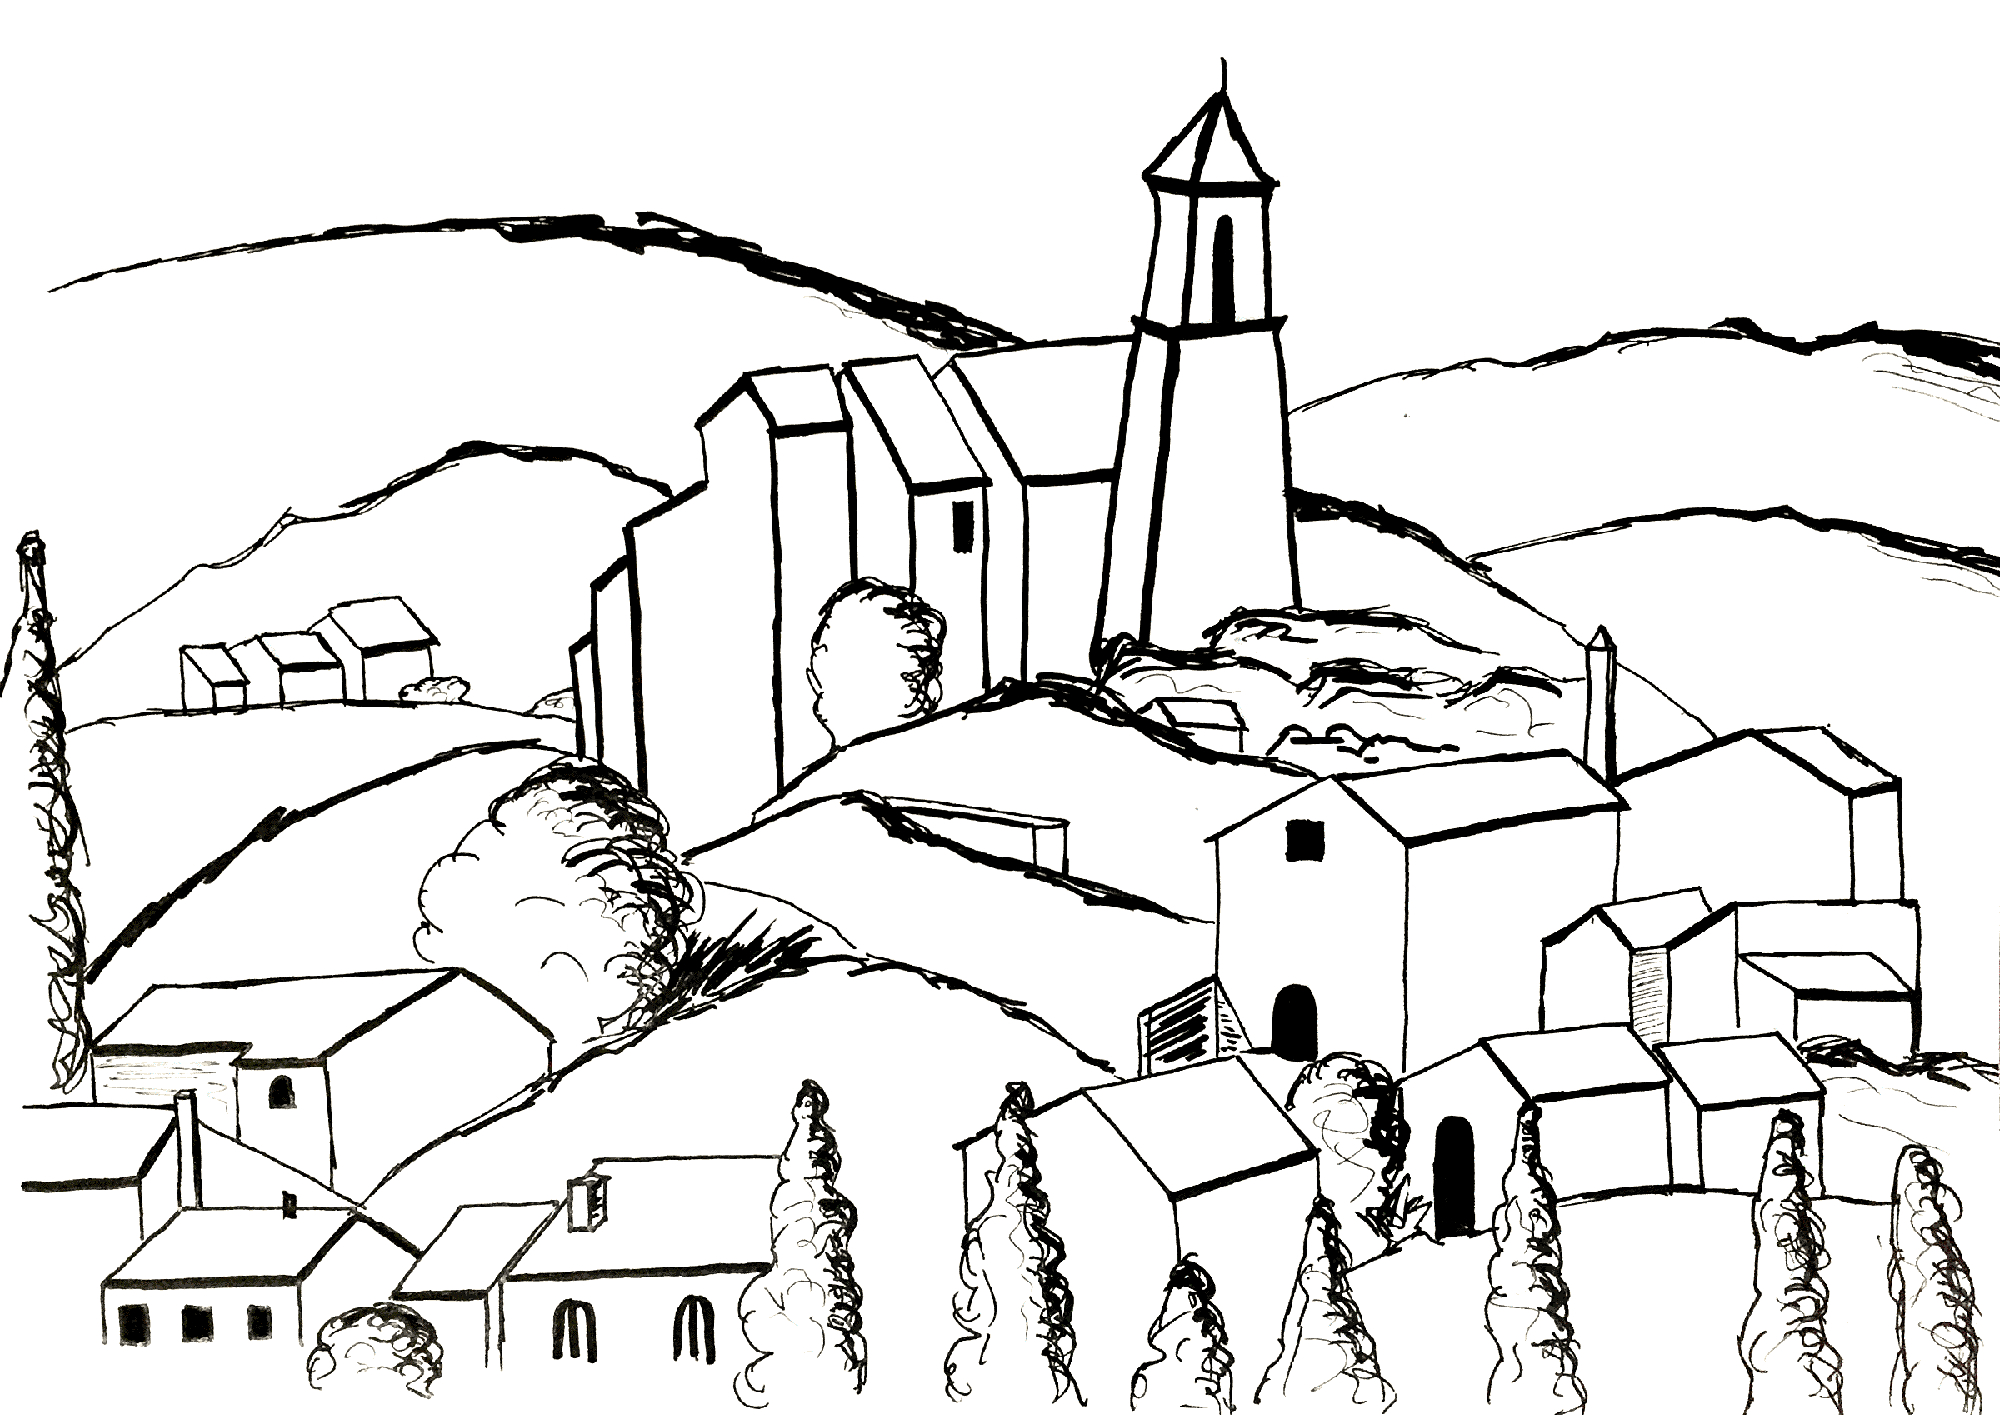 Paul Coloring Pages Paul Cezanne Free To Color For Kids Paul Cezanne Kids Coloring Pages